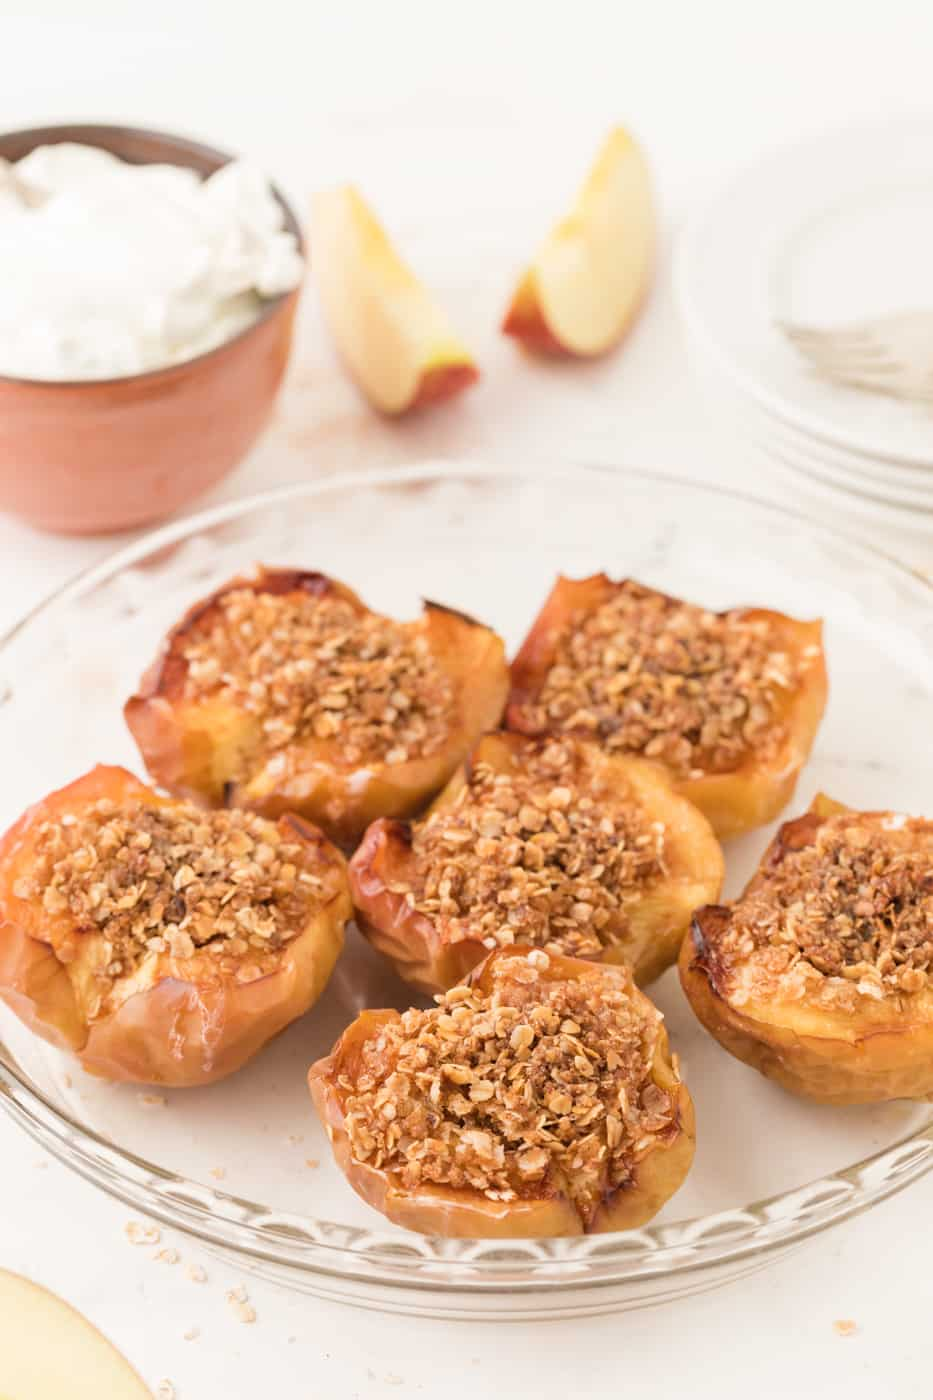 Air fryer baked apples on a plate